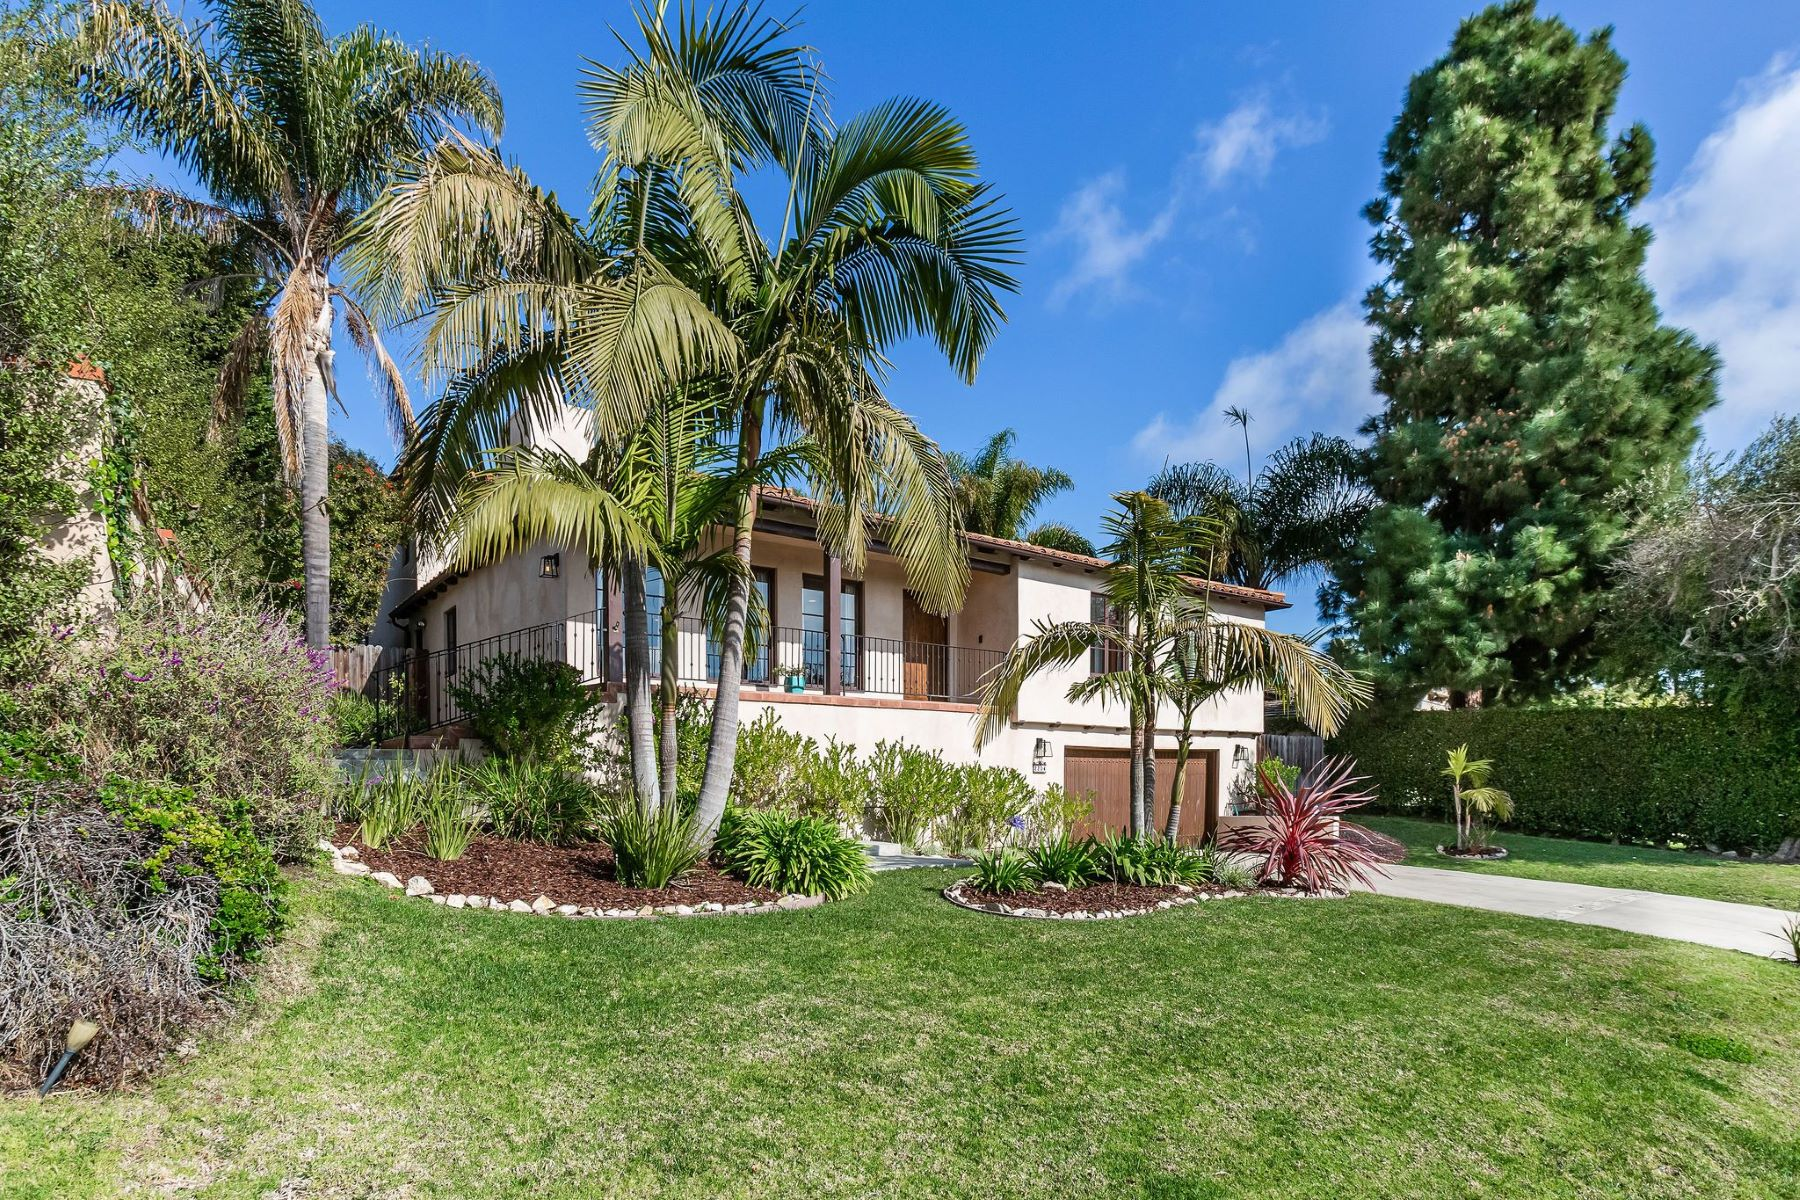 Single Family Homes for Sale at 2204 Vía Pacheco, Palos Verdes Estates, CA 90274 2204 Vía Pacheco Palos Verdes Estates, California 90274 United States